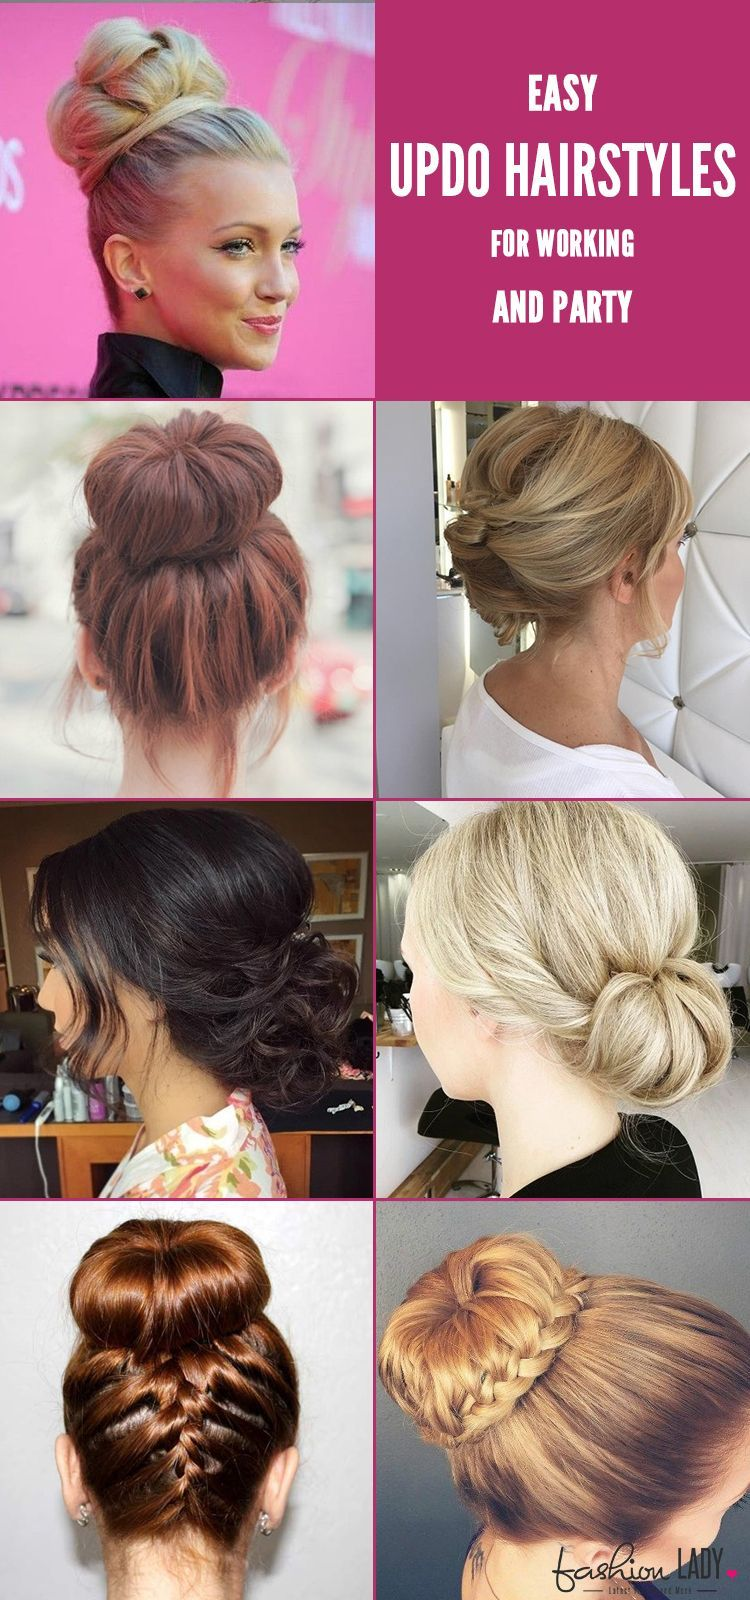 Easy updo hairstyles for working and party easy hairstyles